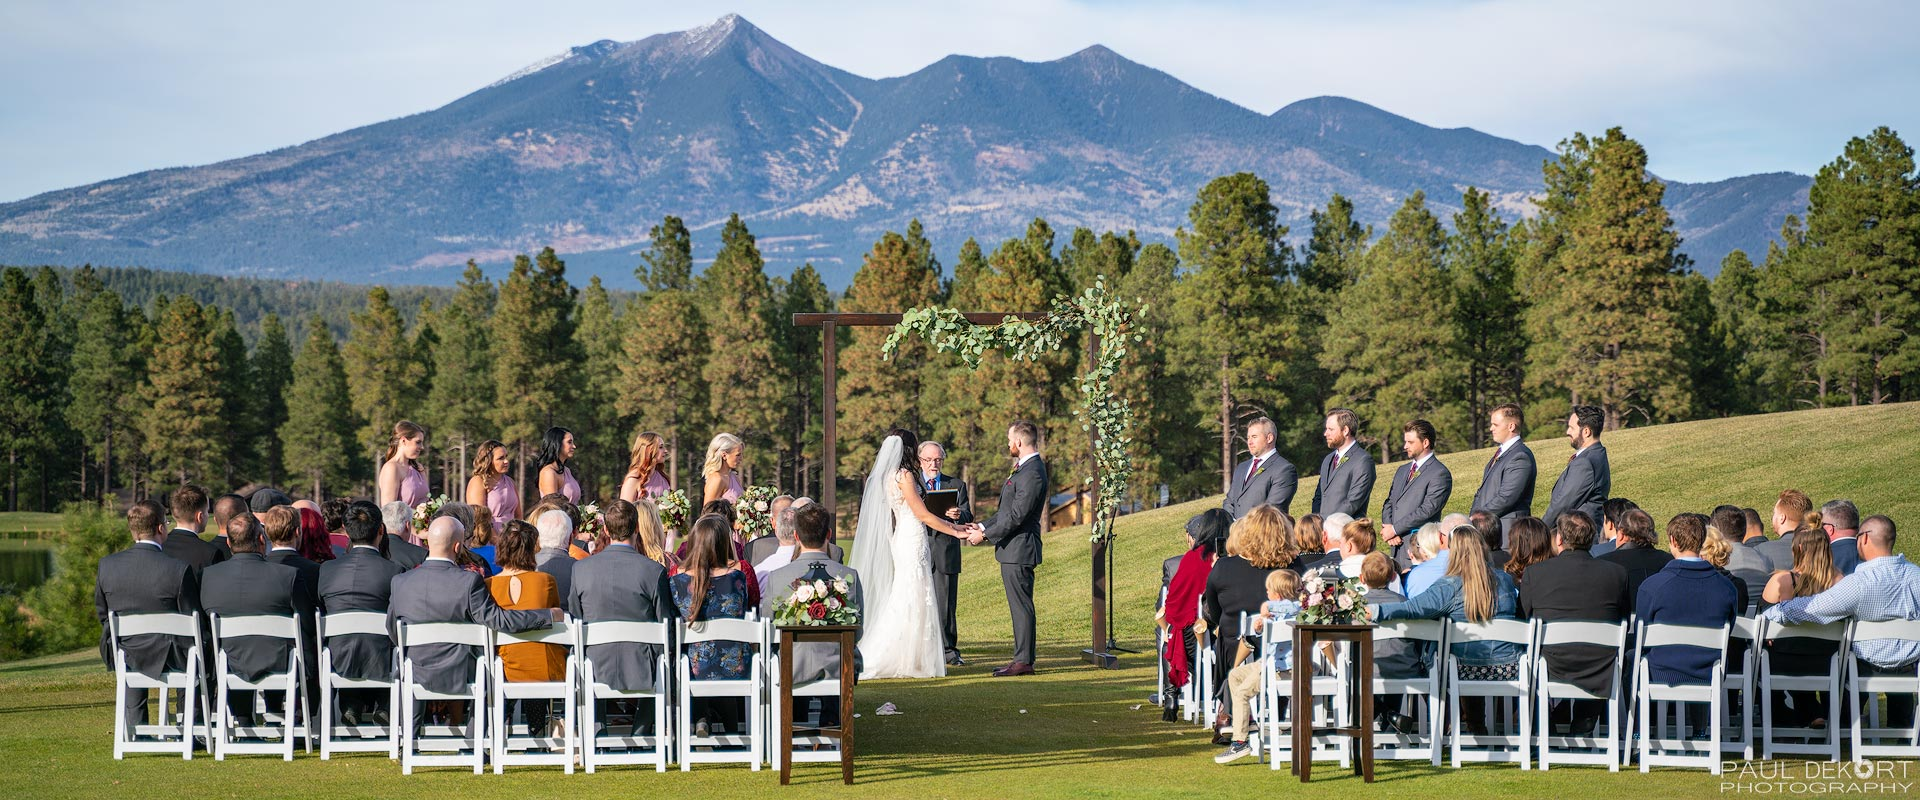 Wedding Photography of ceremony in front of Flagstaff mountains, Flagstaff, AZ.